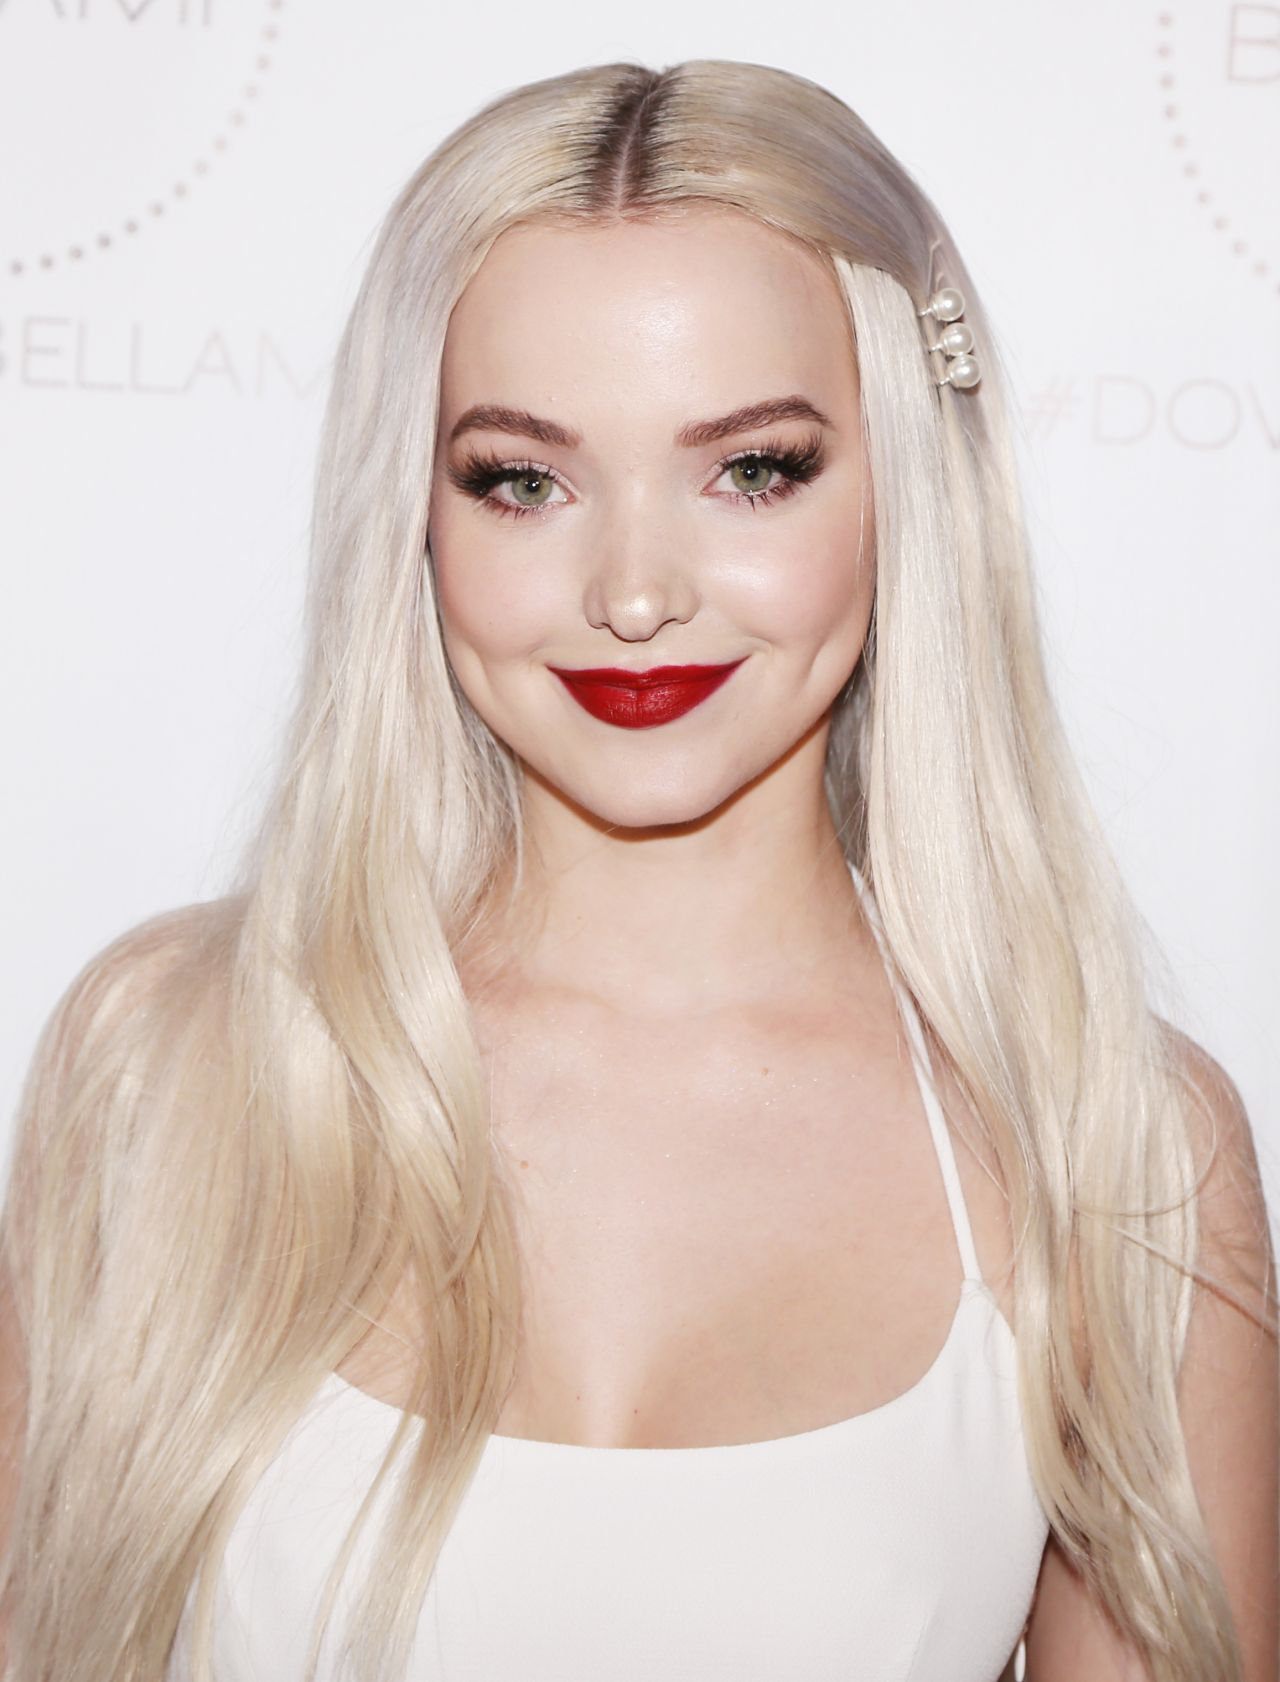 Discussion on this topic: Haley Webb, dove-cameron/